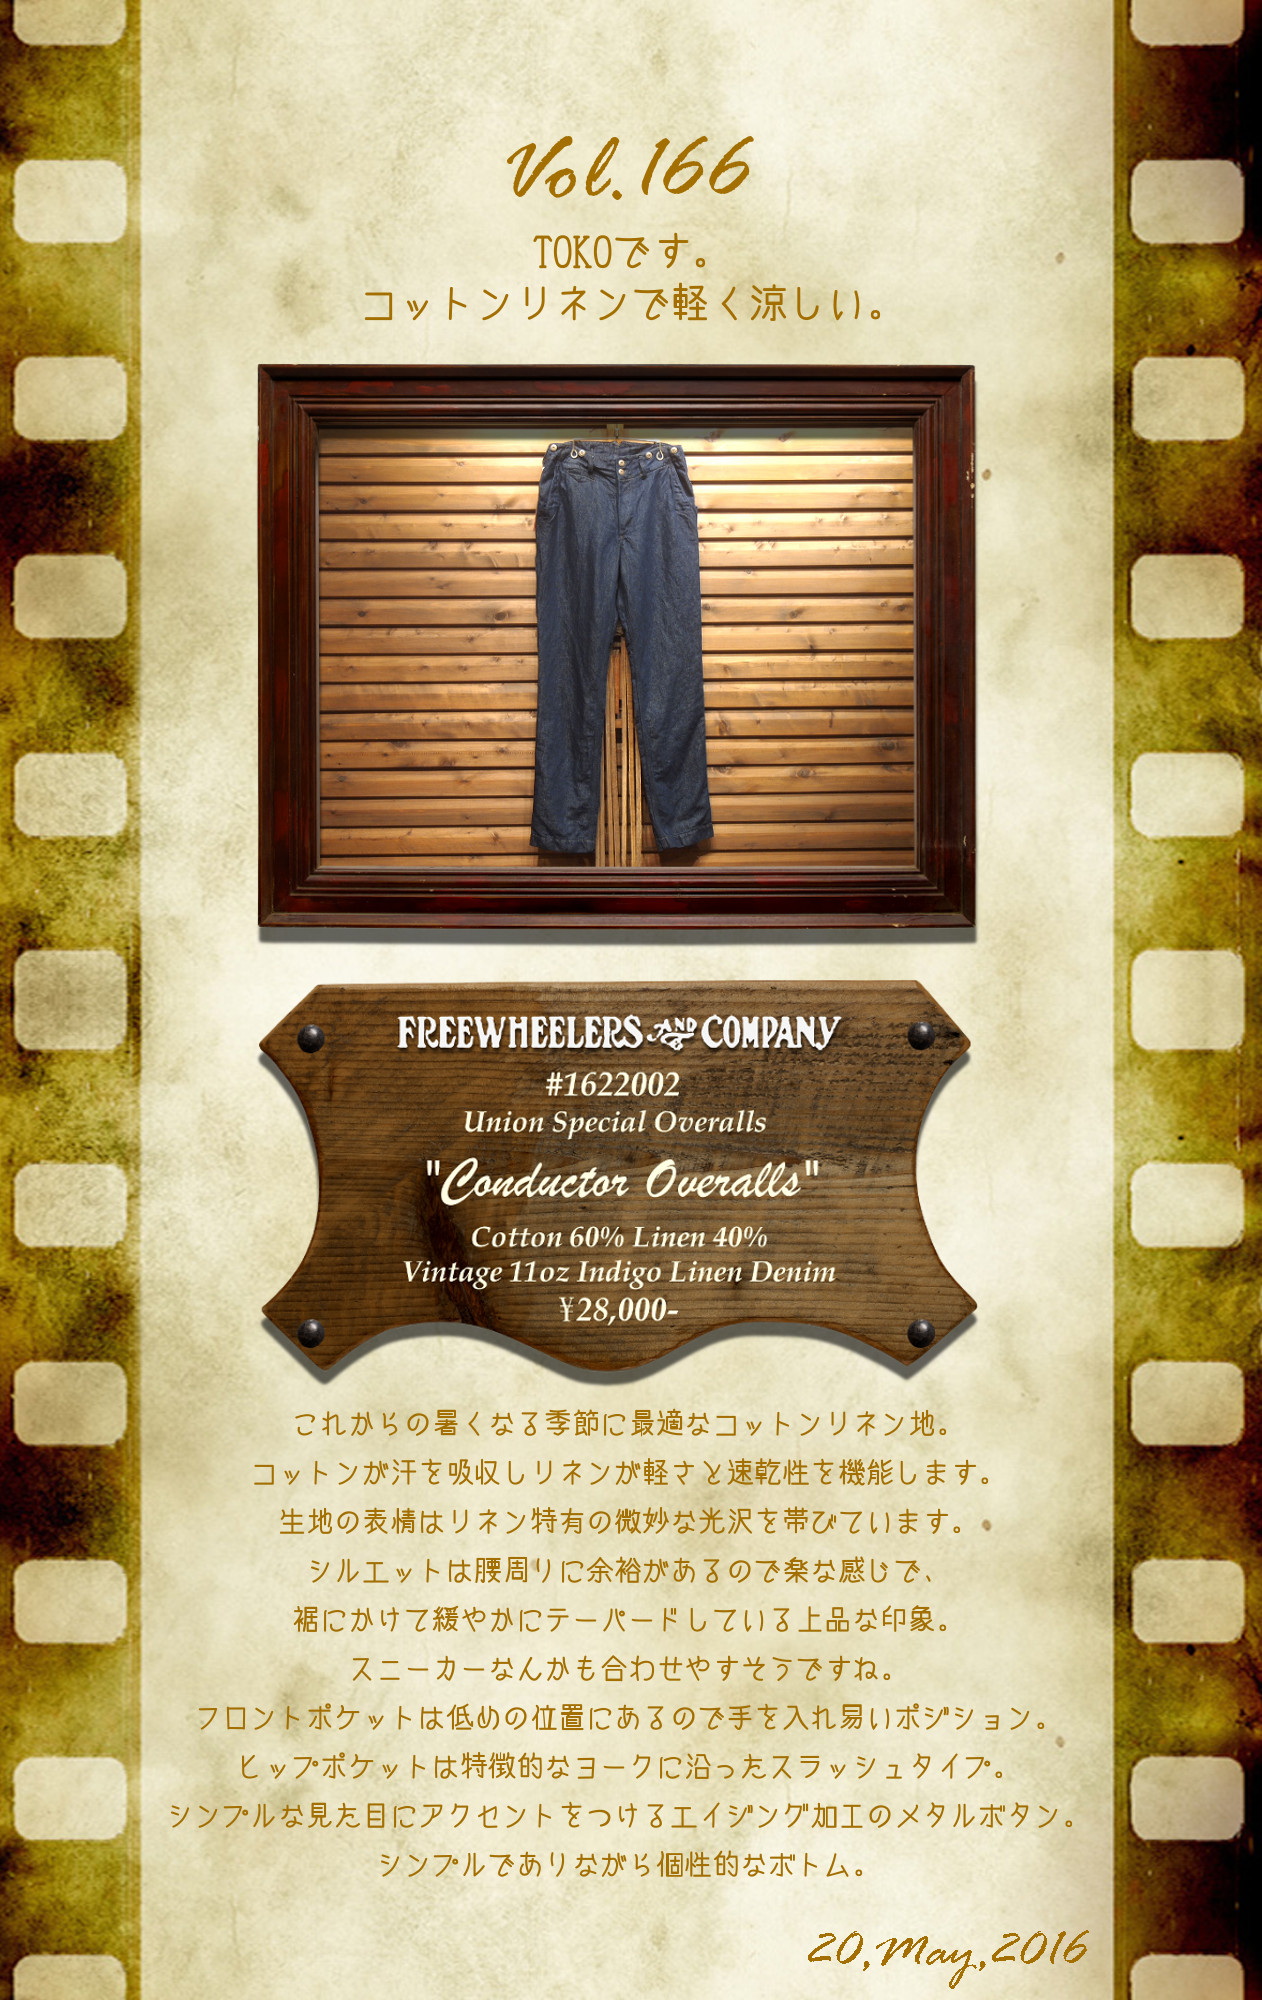 FREEWHEELERS,フリーホイーラーズ,1012002,601,ボトム,パンツ,bottoms,pants,Conductor Overalls